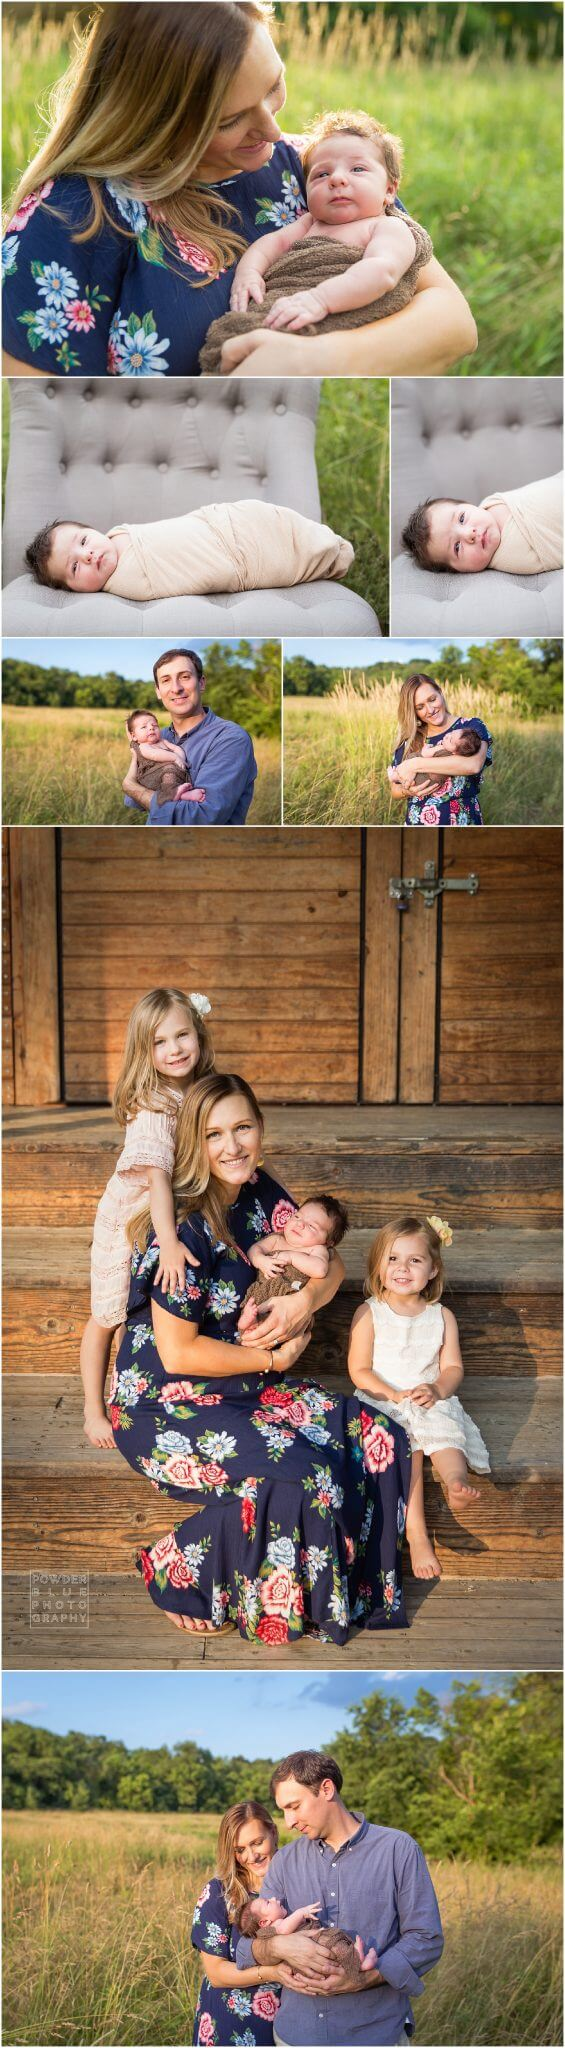 pittsburgh newborn photographer, family session outdoors with newborn baby. family of five. what to wear for outdoor newborn family portraits.